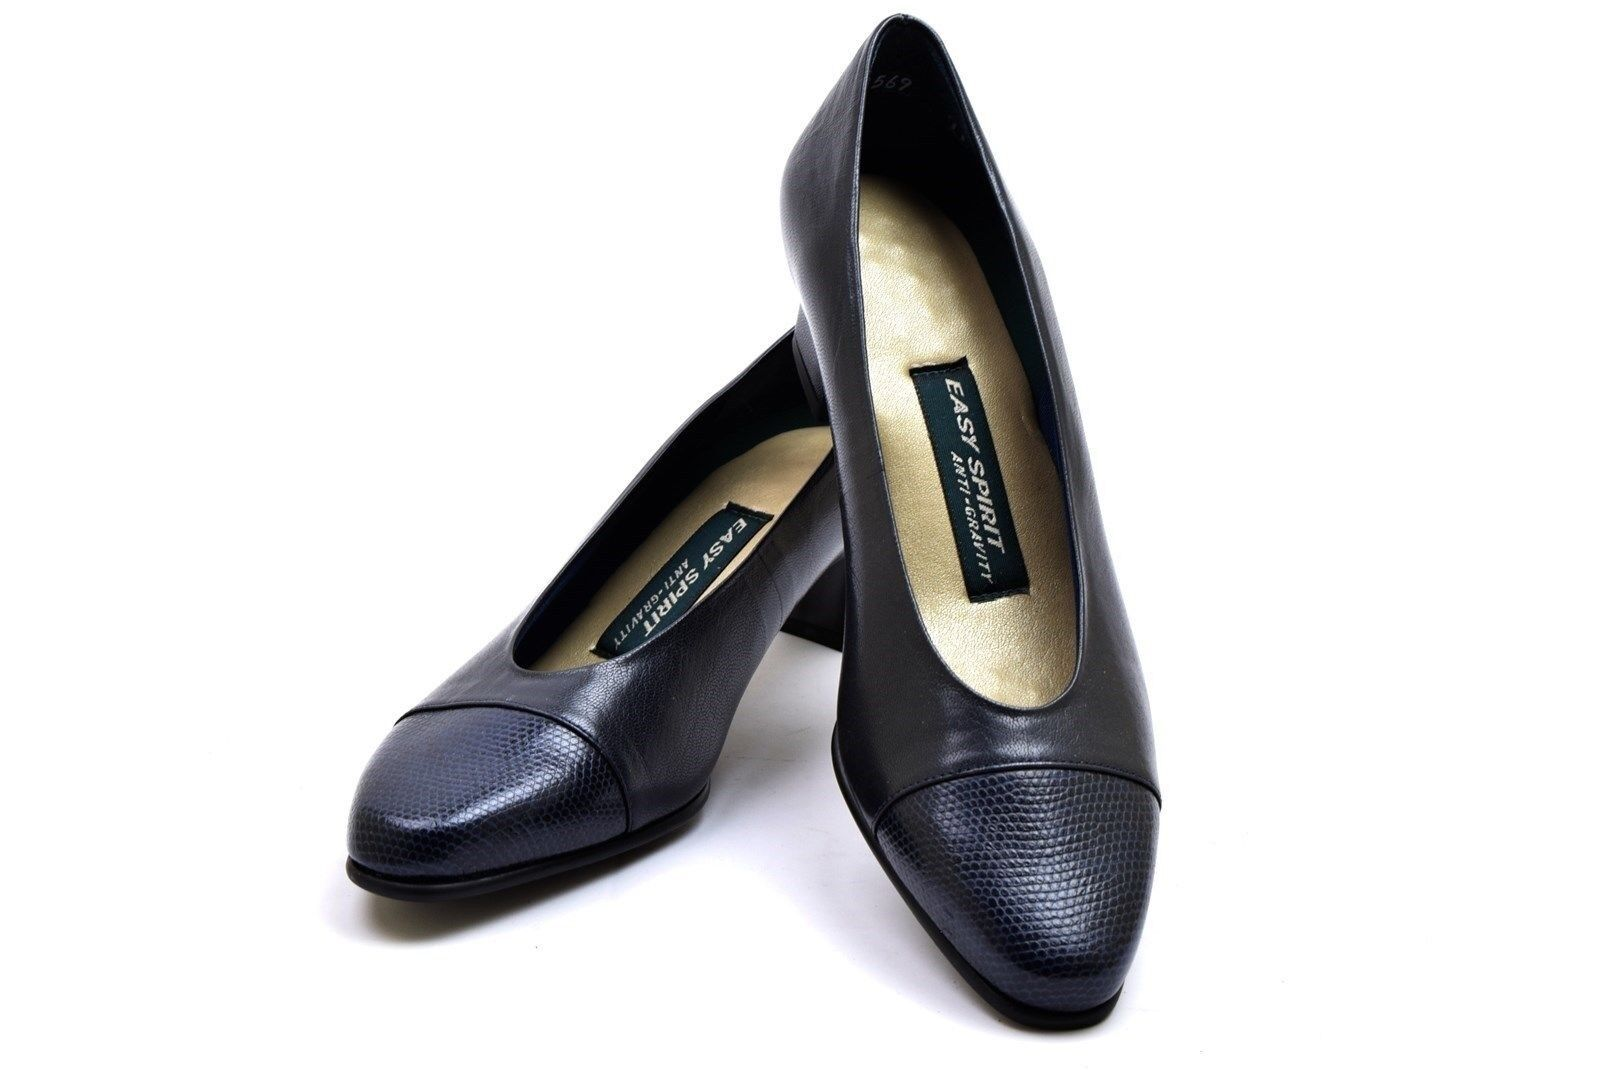 Easy Spirit Classic Pumps Navy Blue Leather Size 6 NEW NWOB